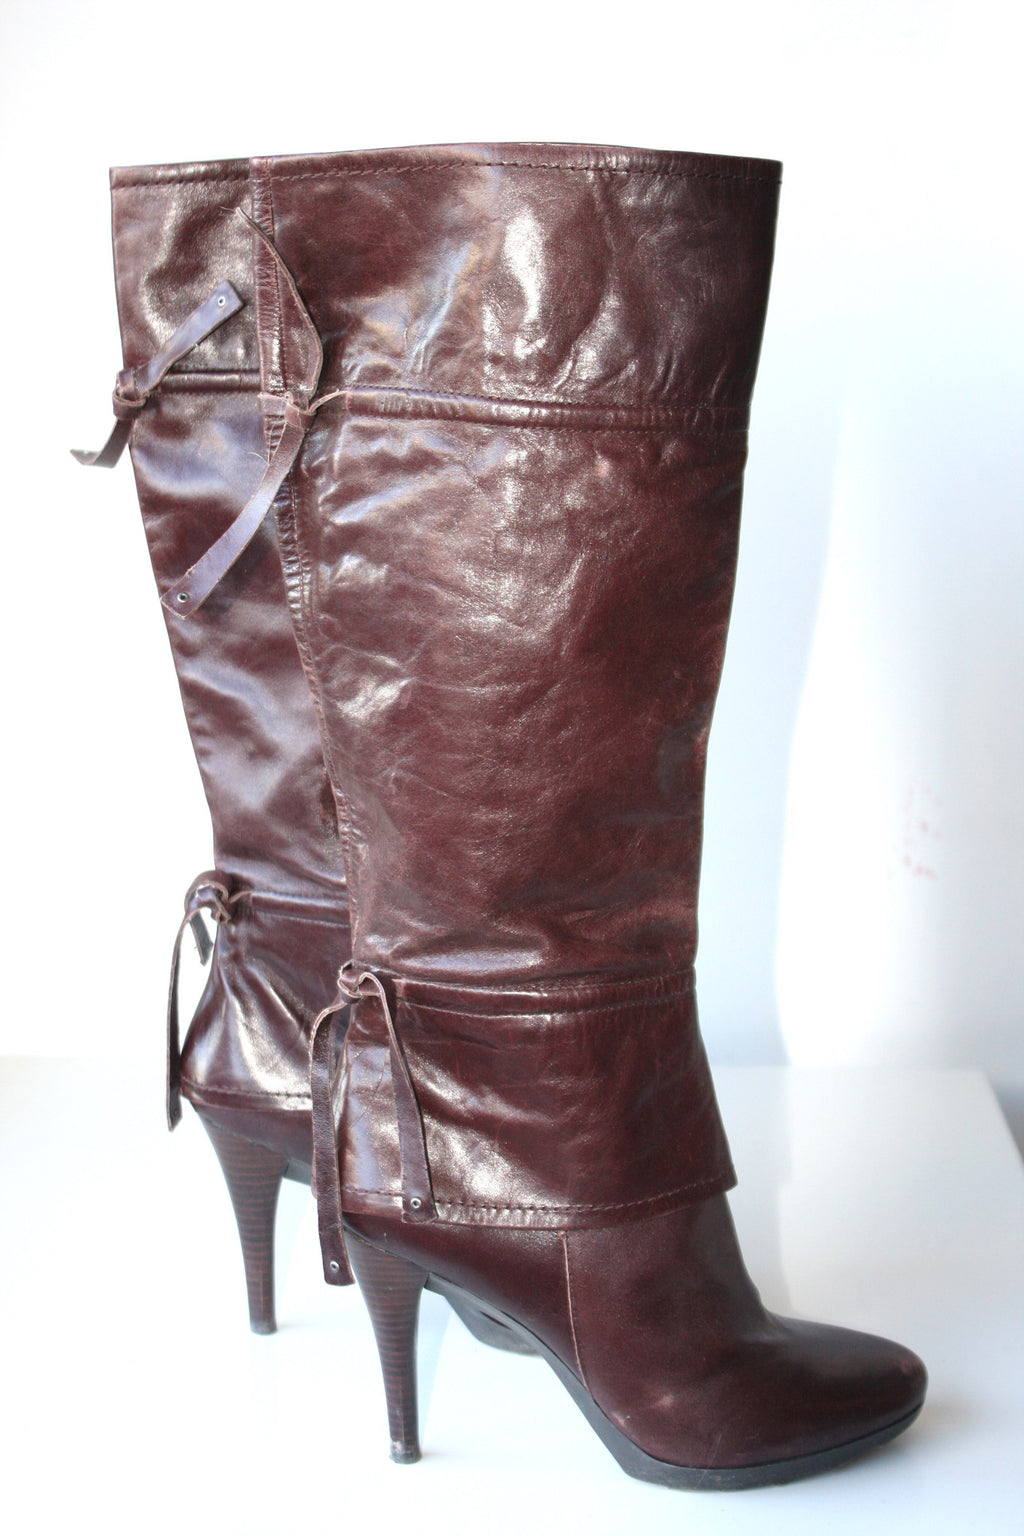 Nine West Tall Leather Boots - Joyce's Closet  - 1